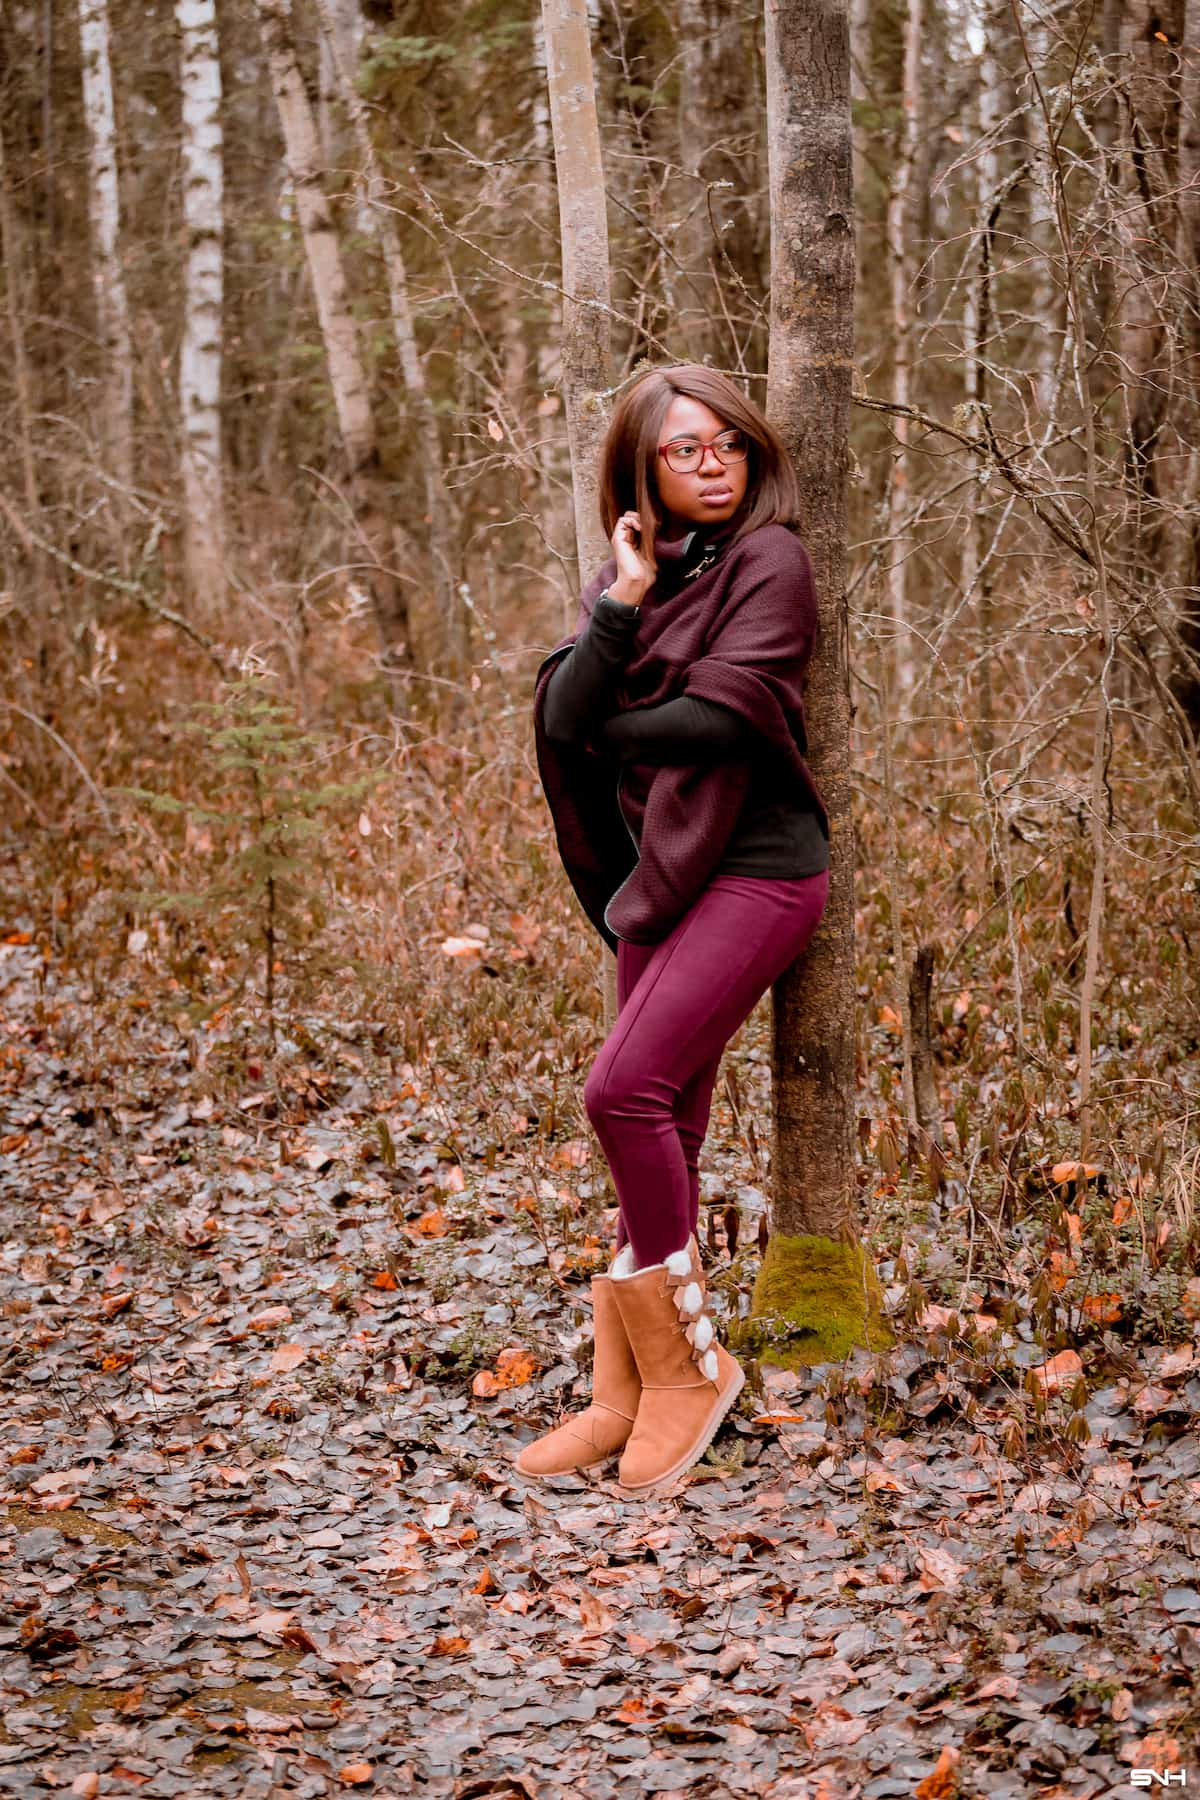 #uggboots #designerdupes #wintershoes Check out these epic list of the best quality Ugg dupes that will keep you toasty warm in the winter for much cheaper. My favorite is...